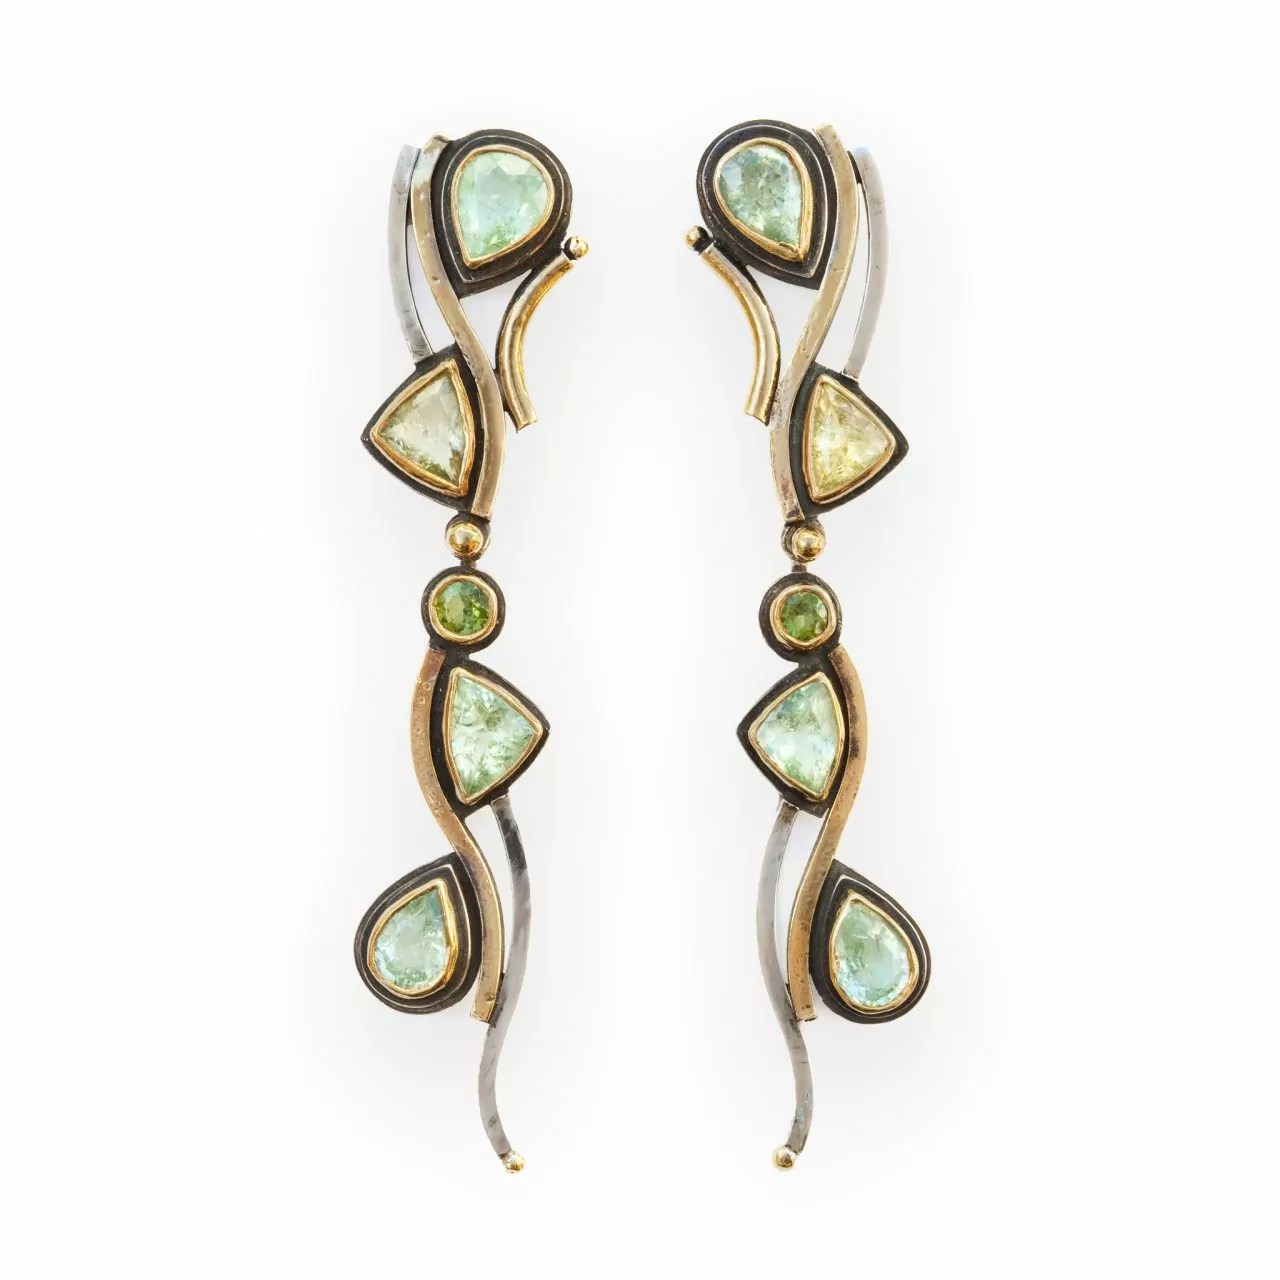 Earrings with Tourmalines and Diamonds